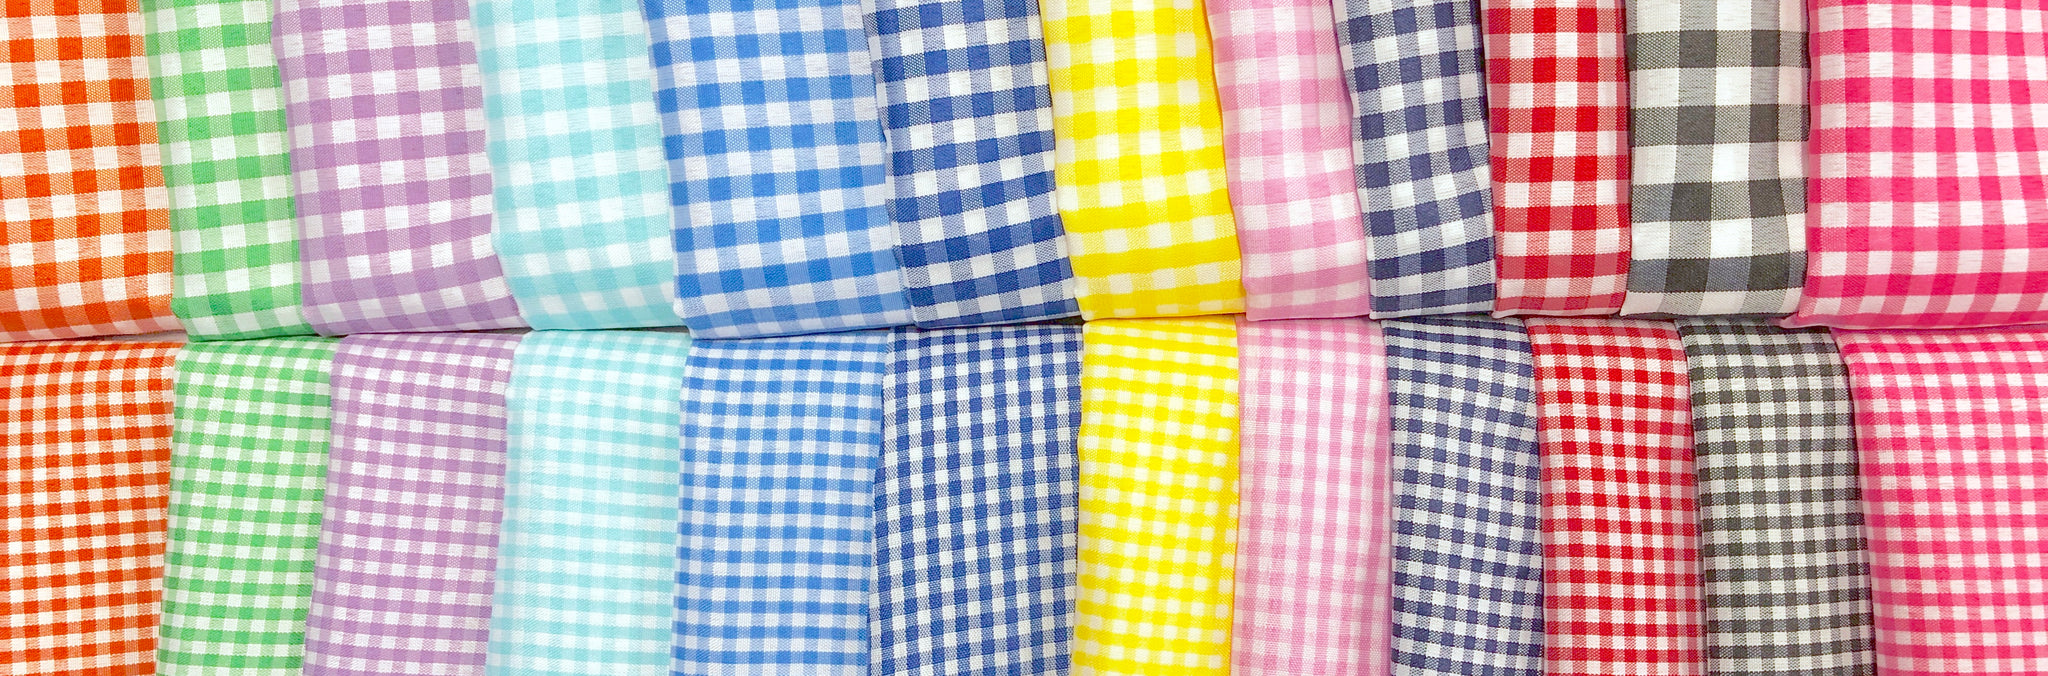 A rainbow assortment of gingham print fabric.